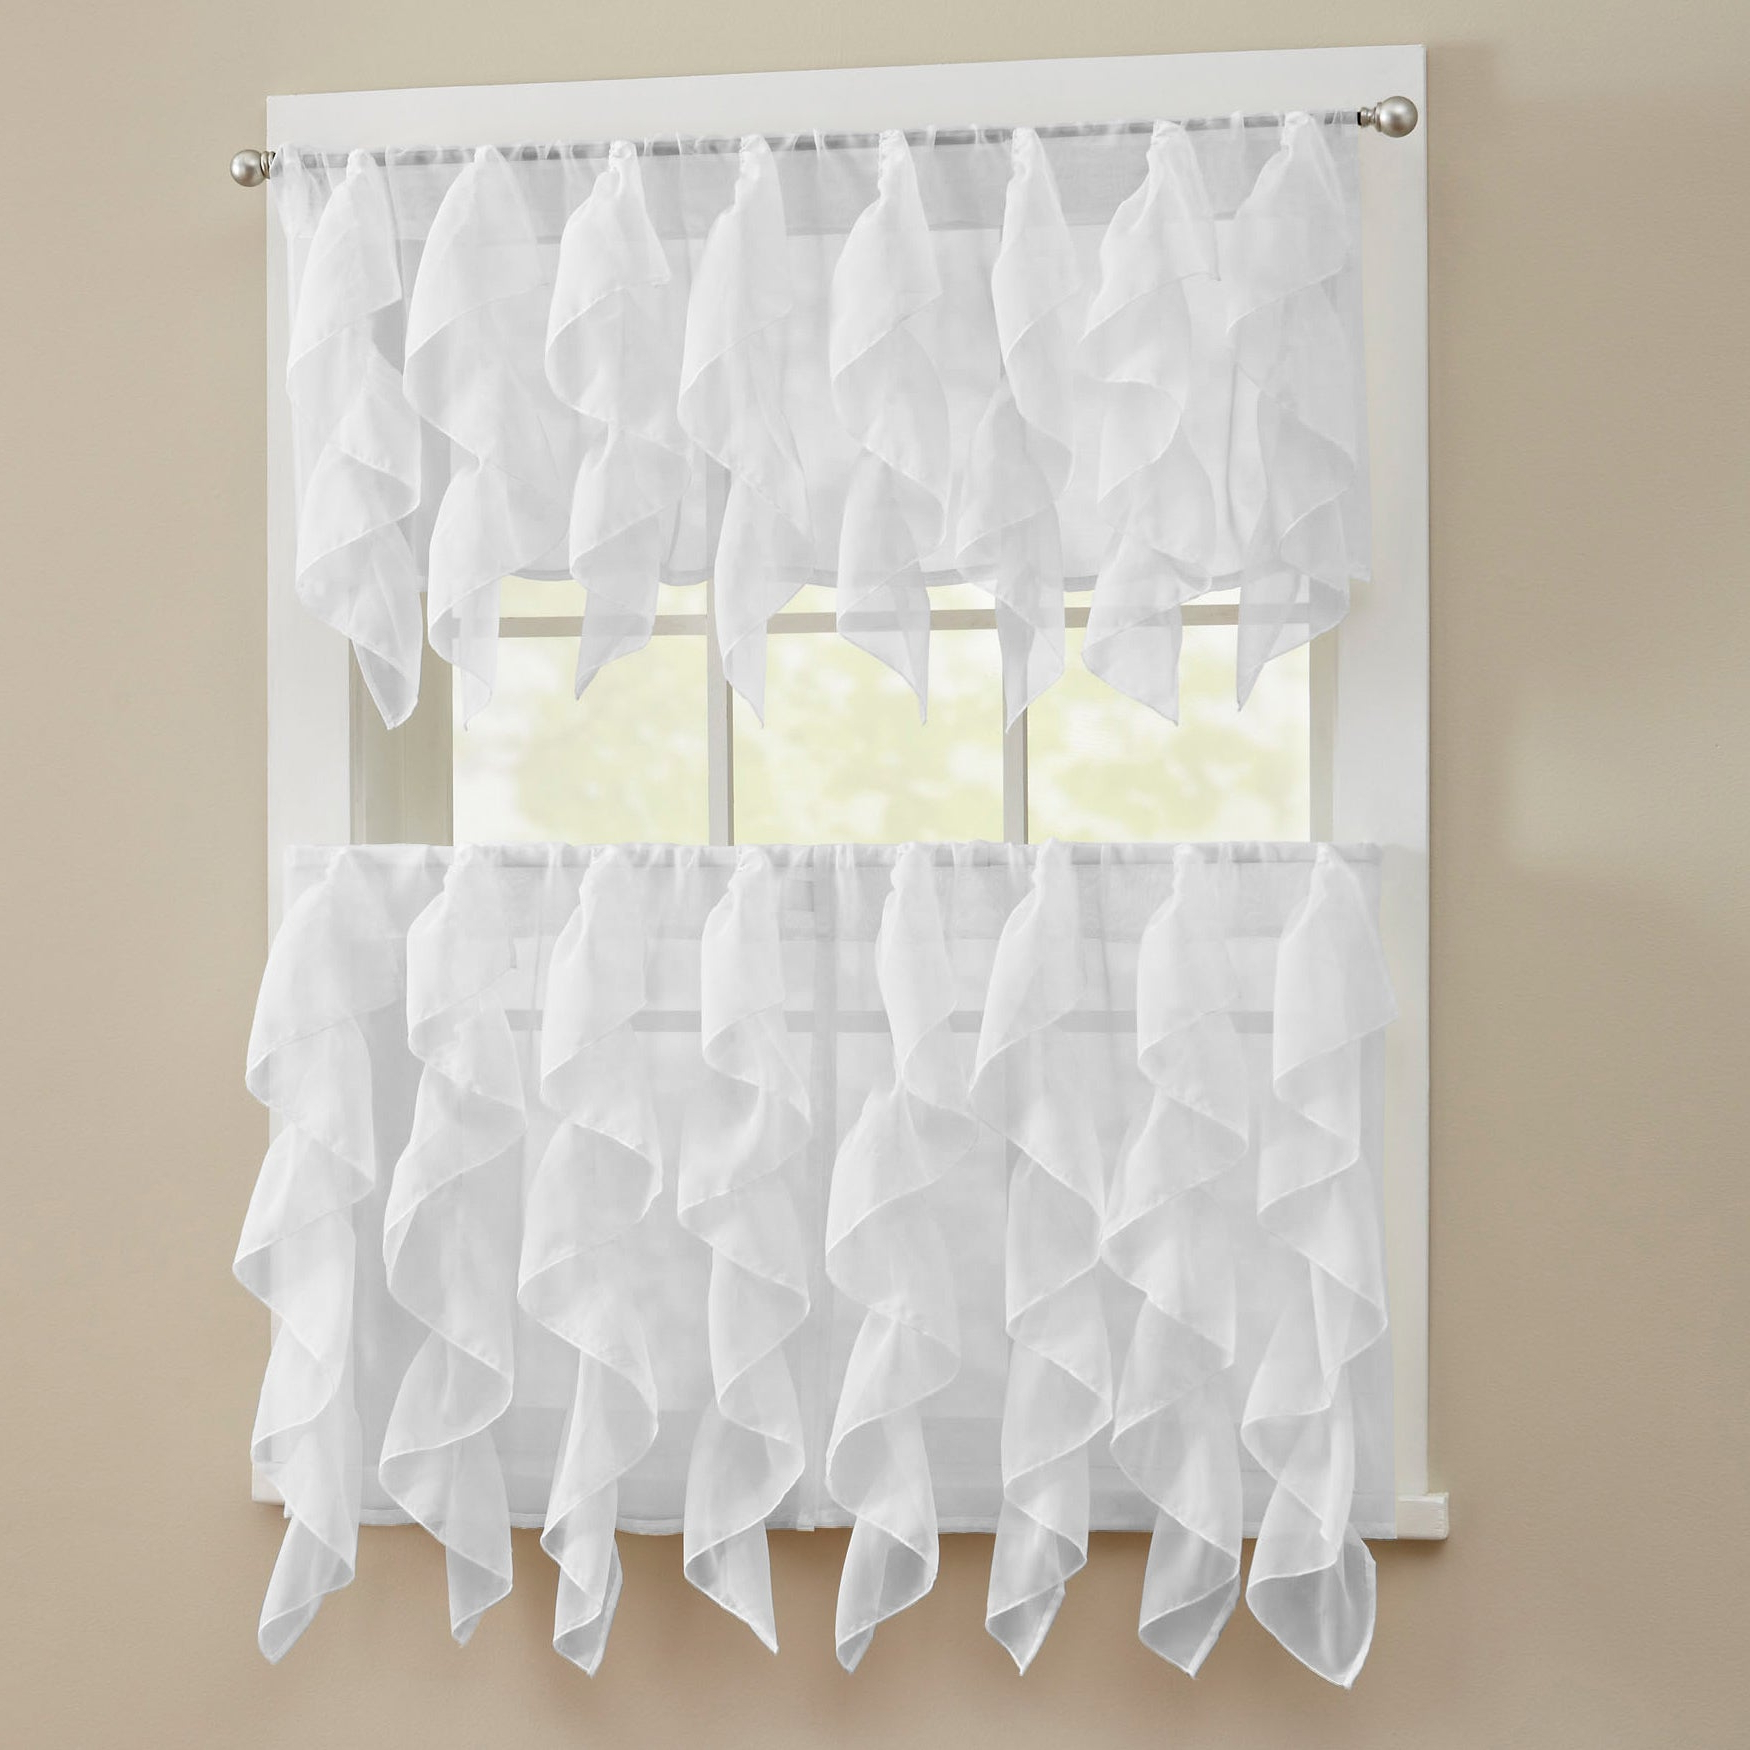 2021 Chic Sheer Voile Vertical Ruffled Window Curtain Tiers Throughout Chic Sheer Voile Vertical Ruffled Tier Window Curtain Valance And Tier (View 5 of 20)